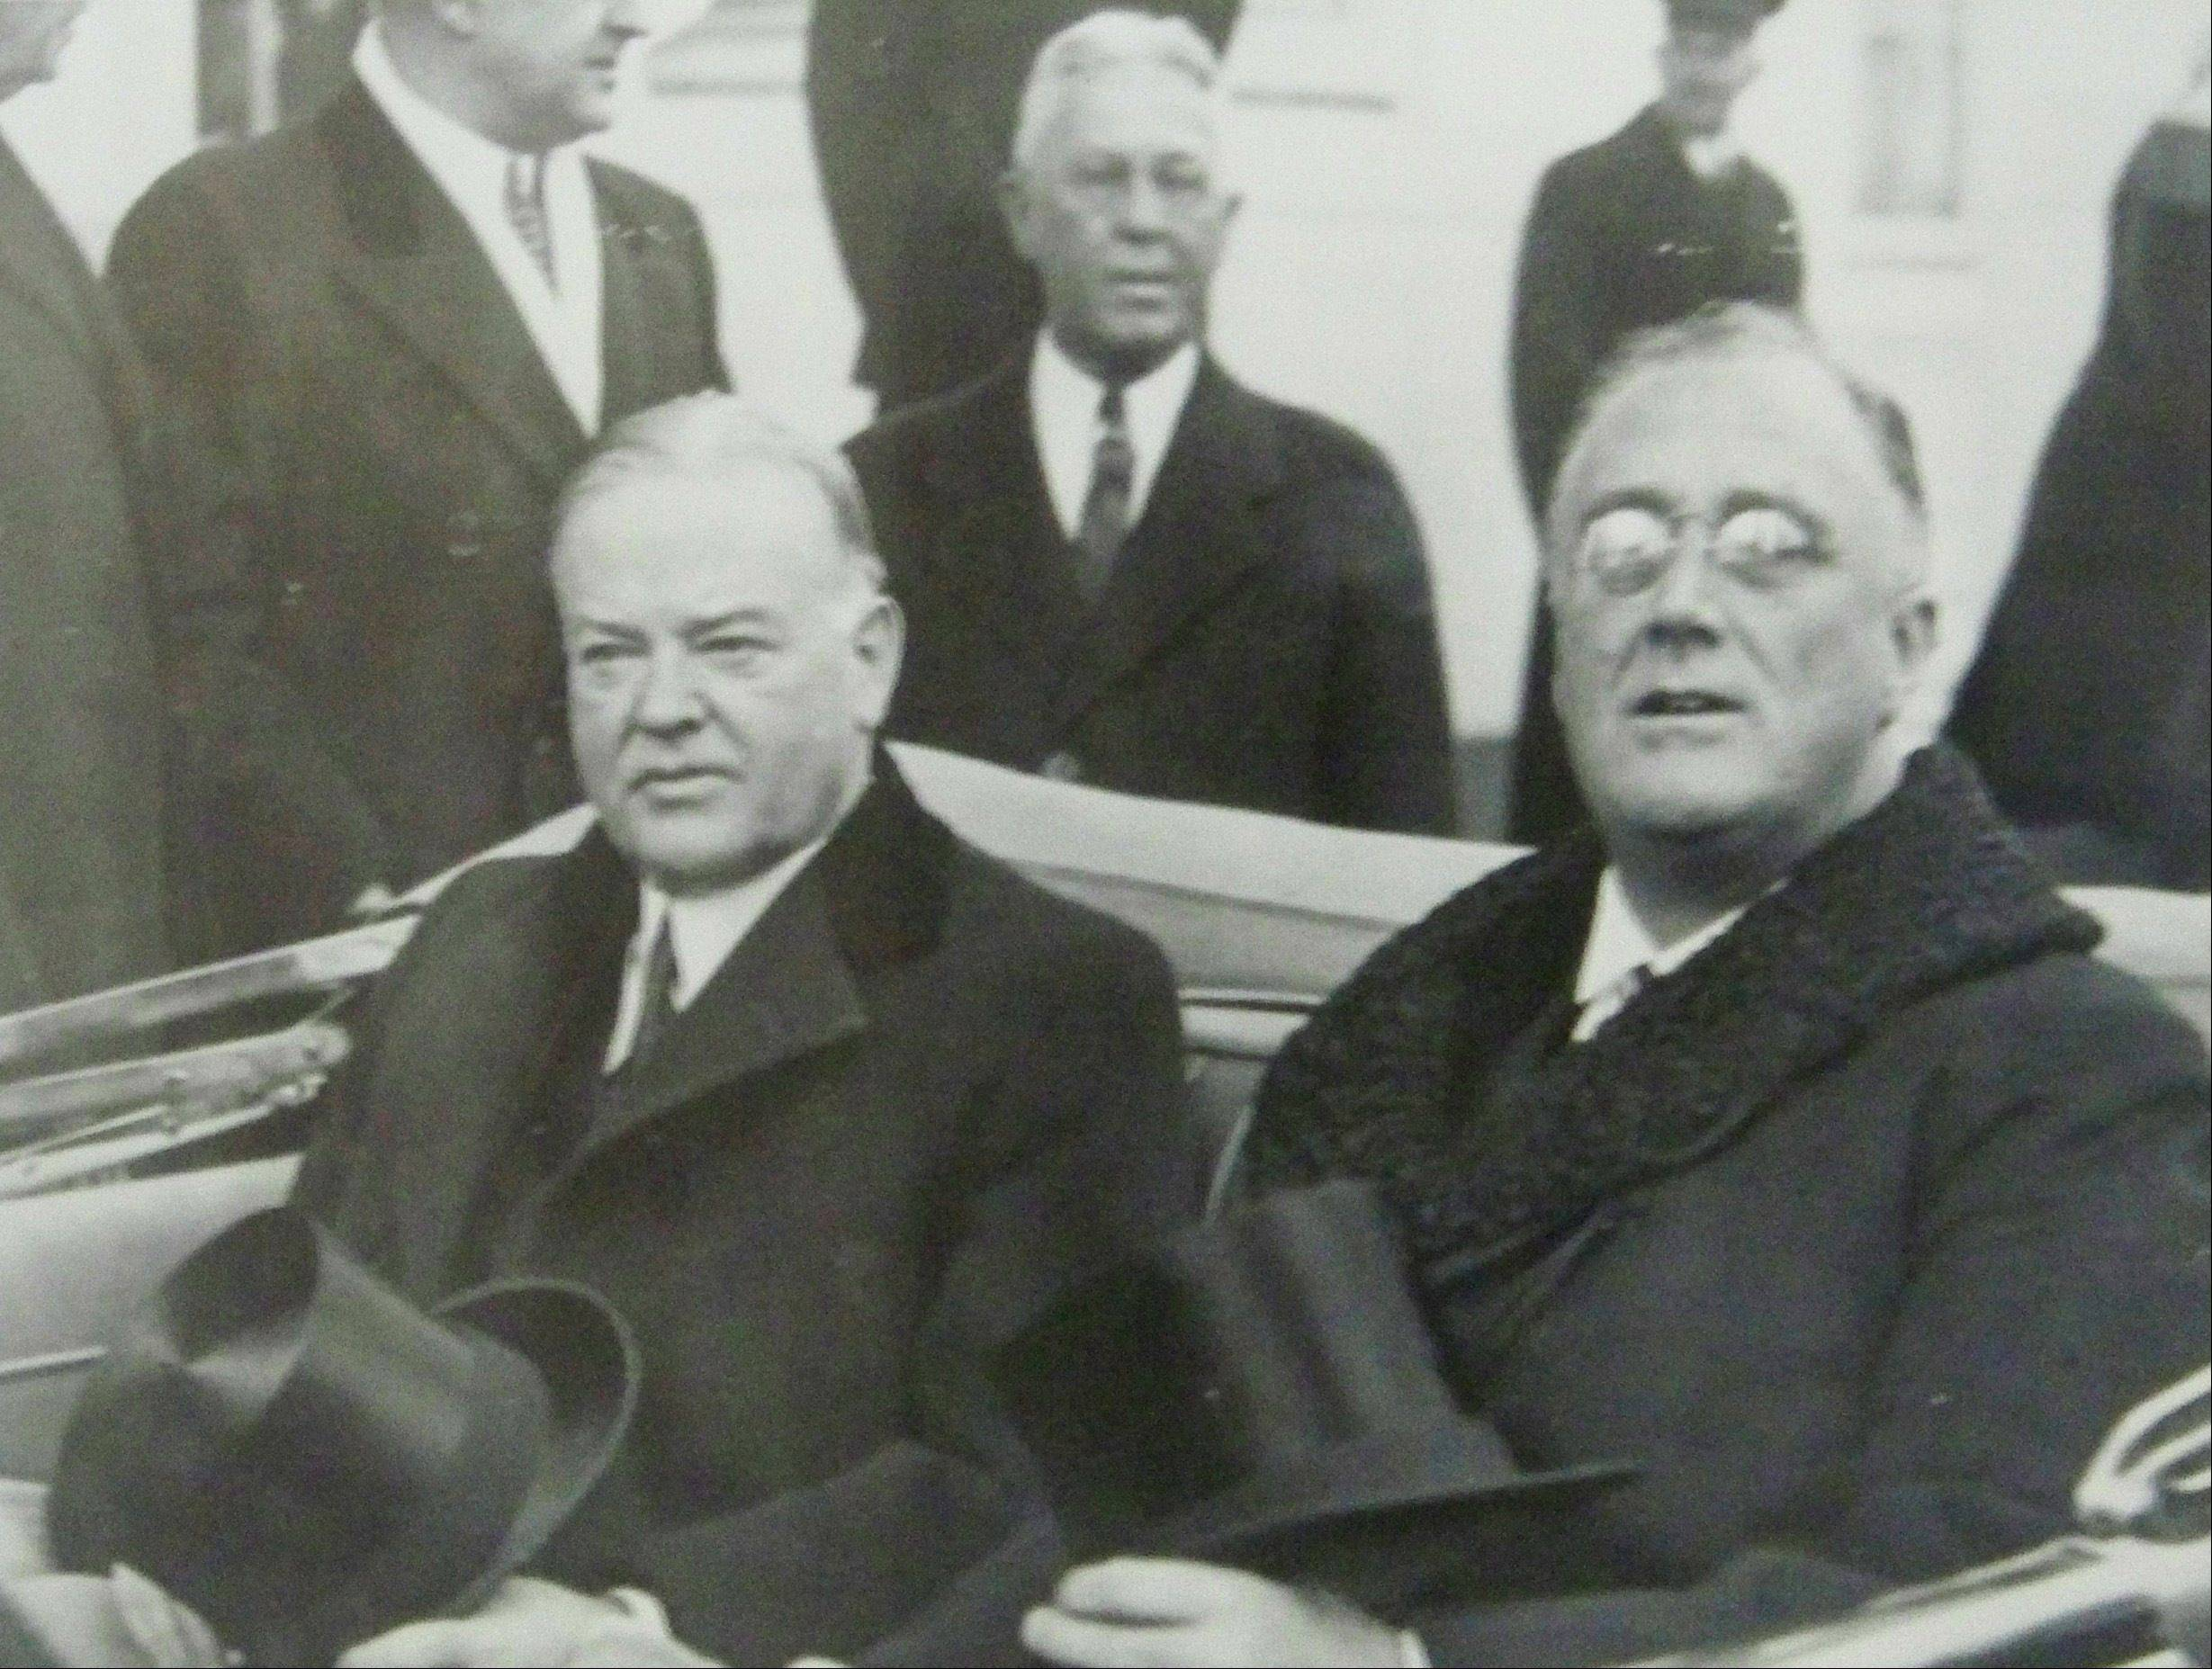 President-elect Franklin D. Roosevelt travels to his Inauguration with the outgoing President Herbert Hoover as they share a tense ride to the Capitol in Washington, D.C.